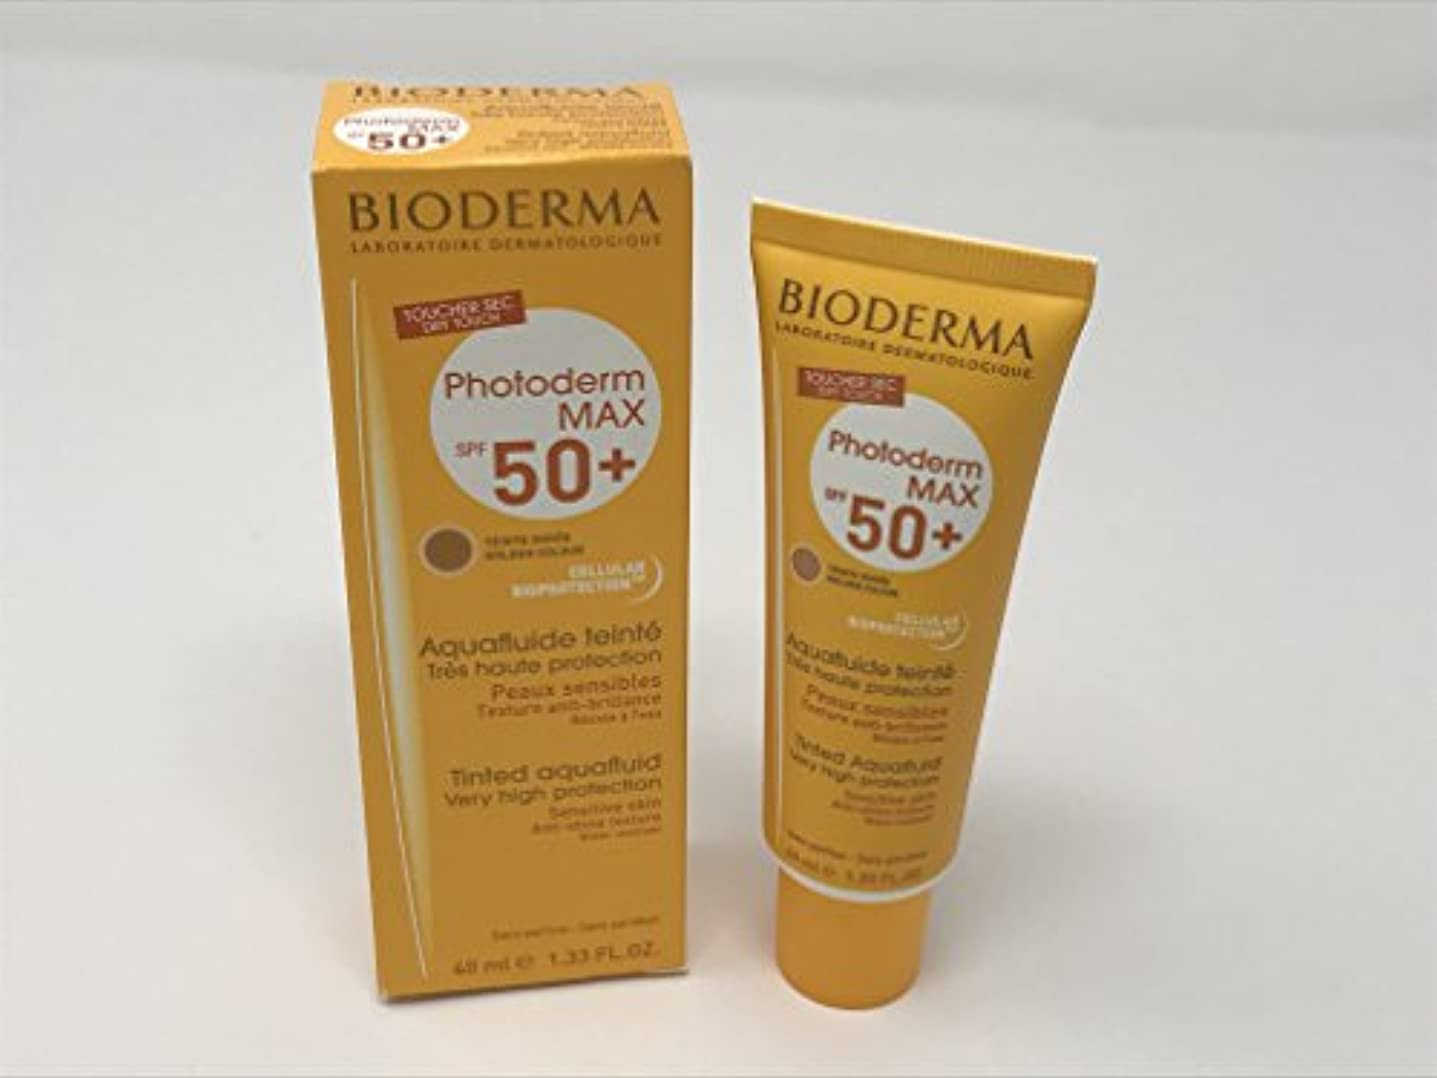 ドアミラーストライド残忍なBioderma Photoderm Max Tinted Aquafluide Spf50+ Golden Colour 40ml [並行輸入品]